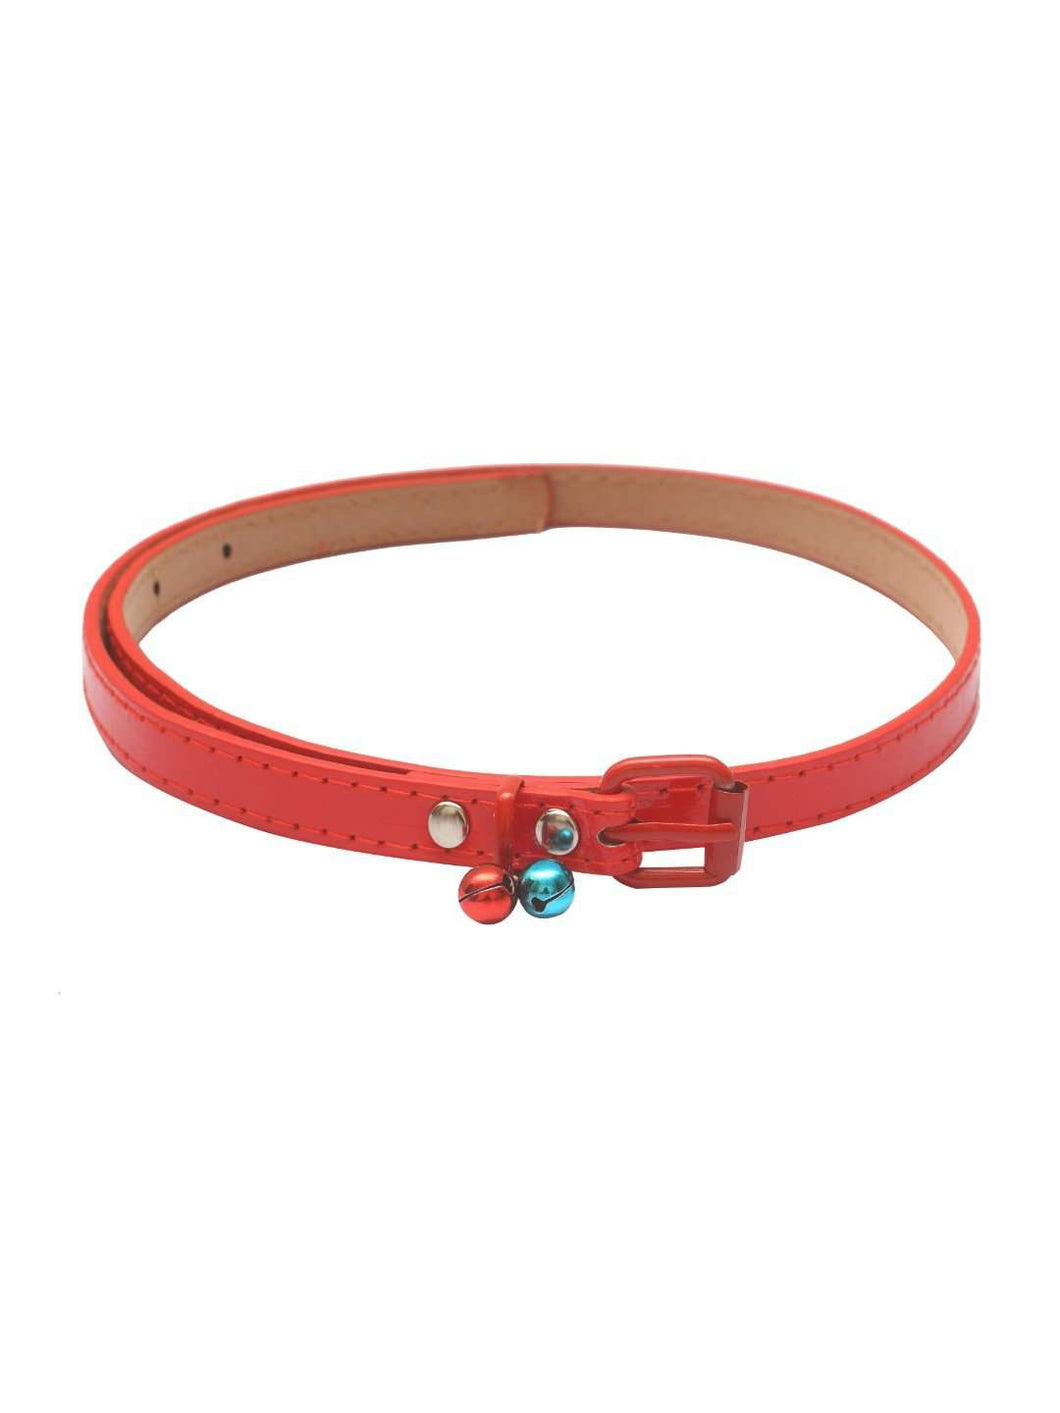 Stol'n Kids Plain Red Belt with Bells - SWHF